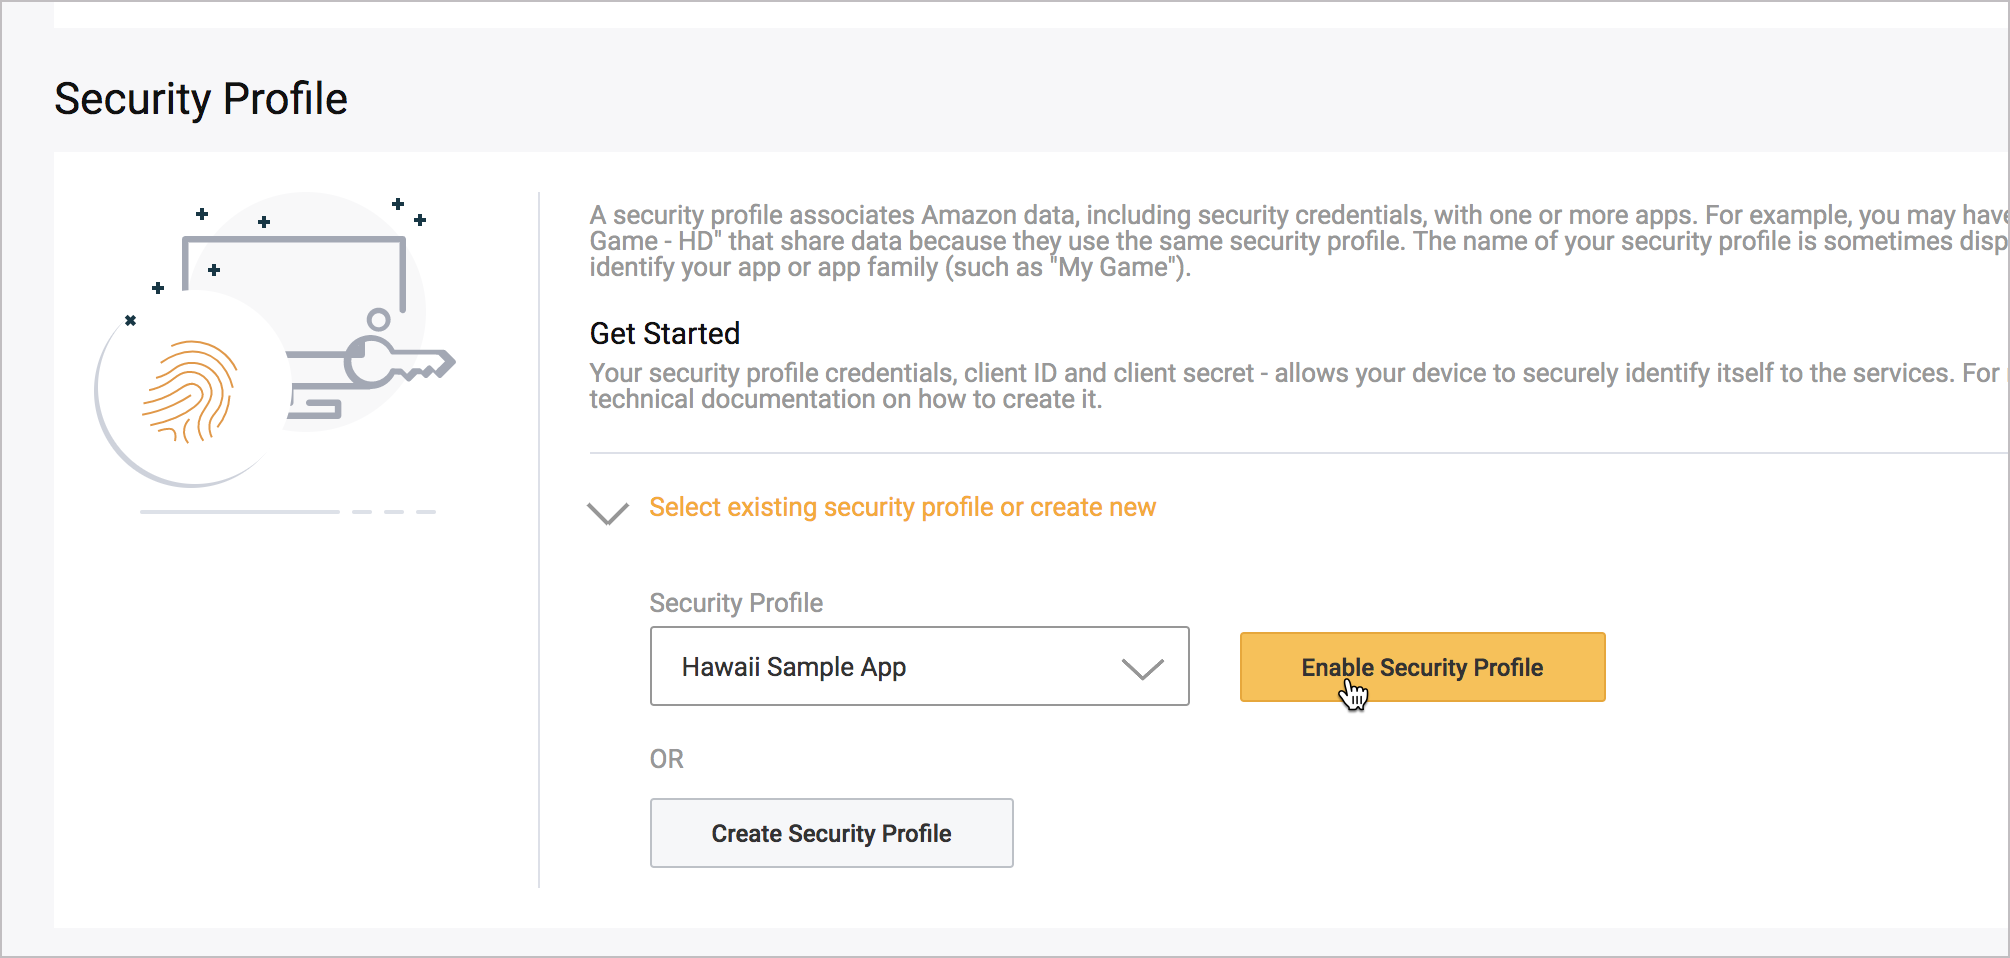 Selecting the security profile for your app